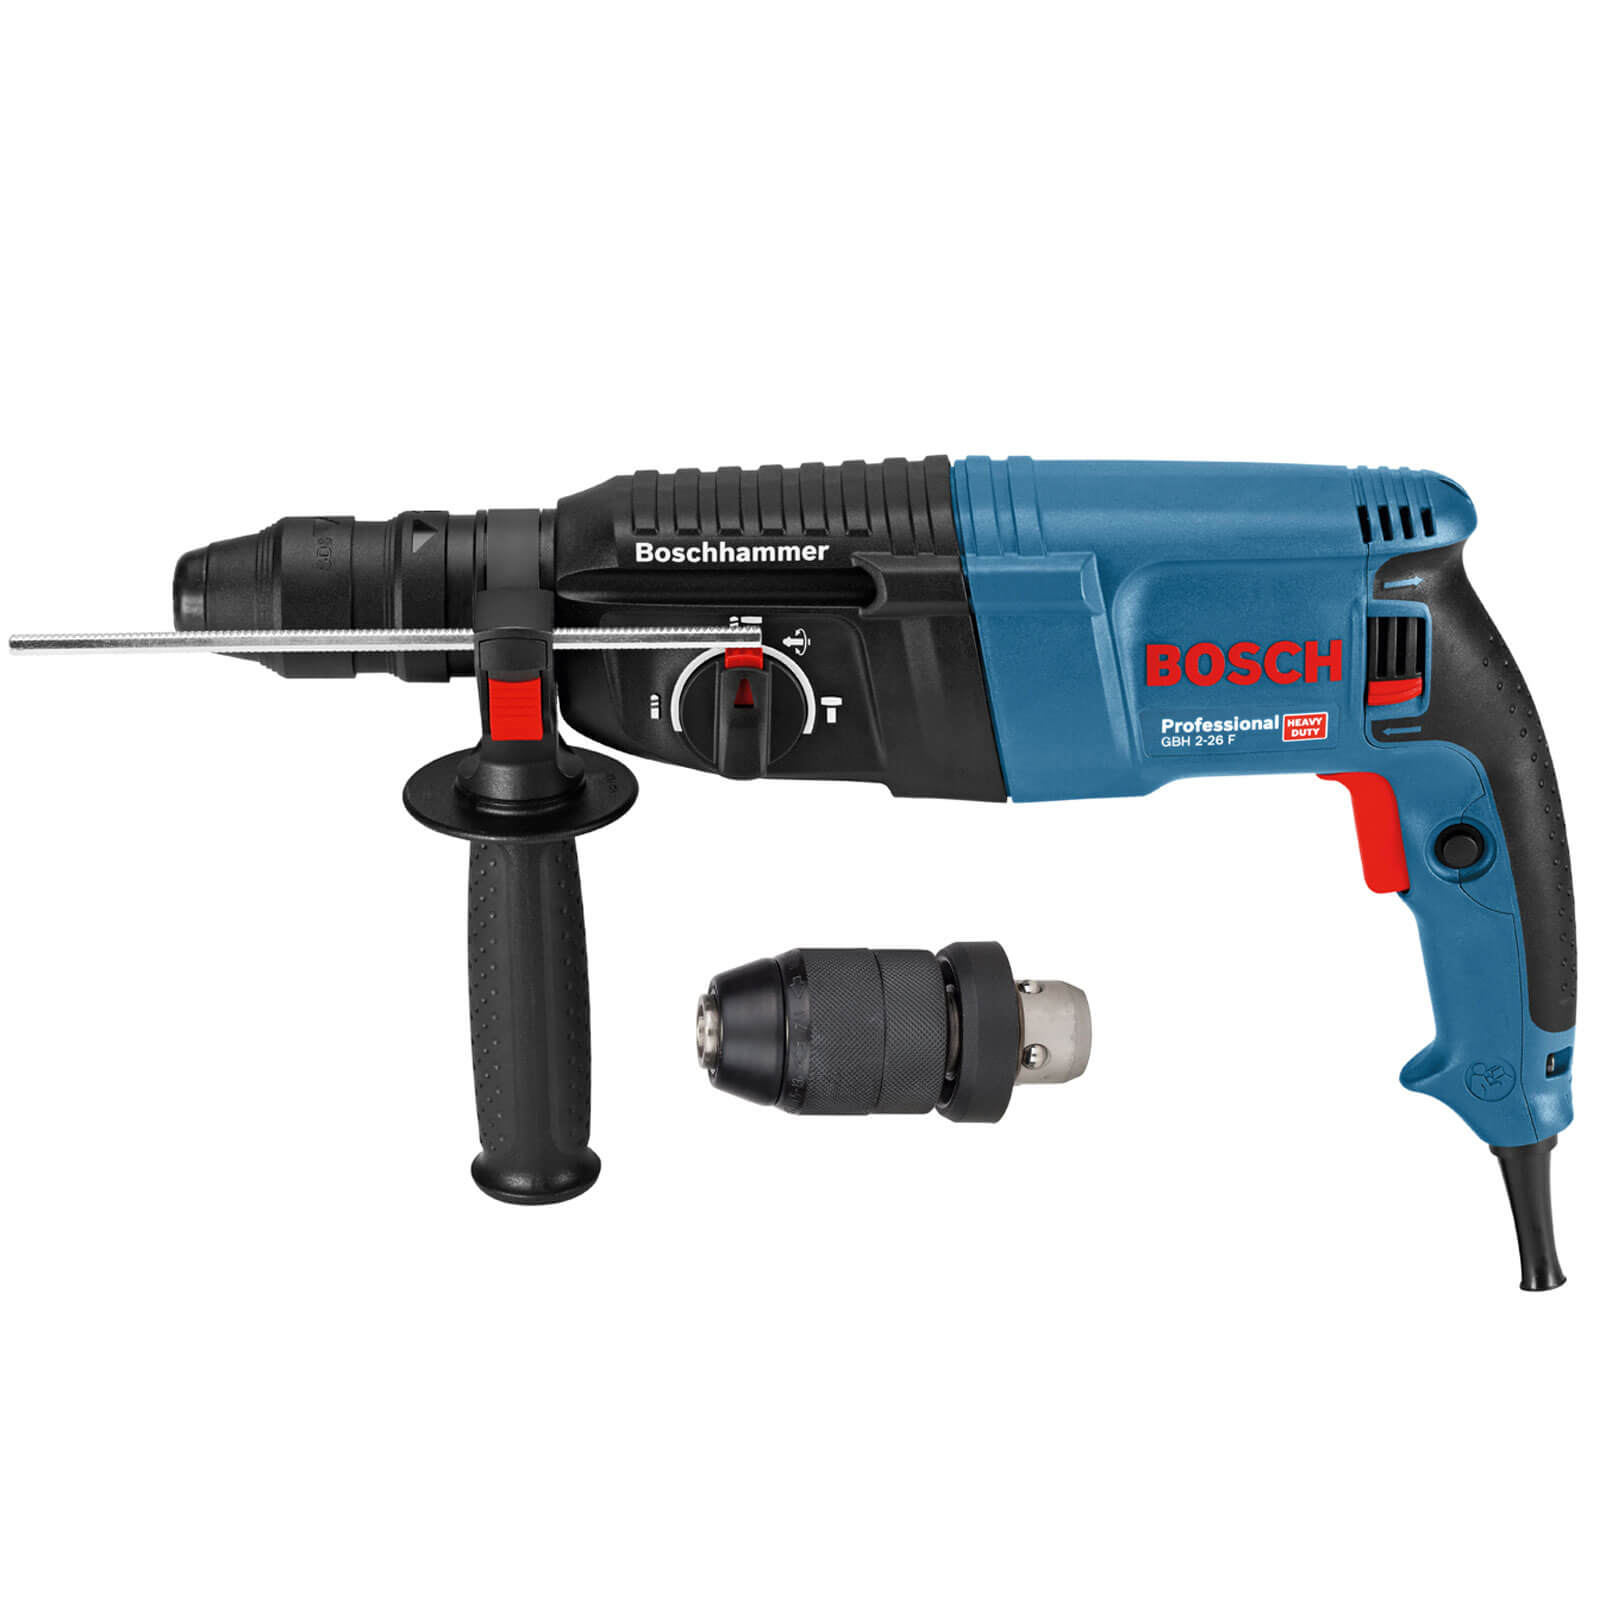 bosch gbh 2 26 f sds plus 3 mode hammer drill. Black Bedroom Furniture Sets. Home Design Ideas